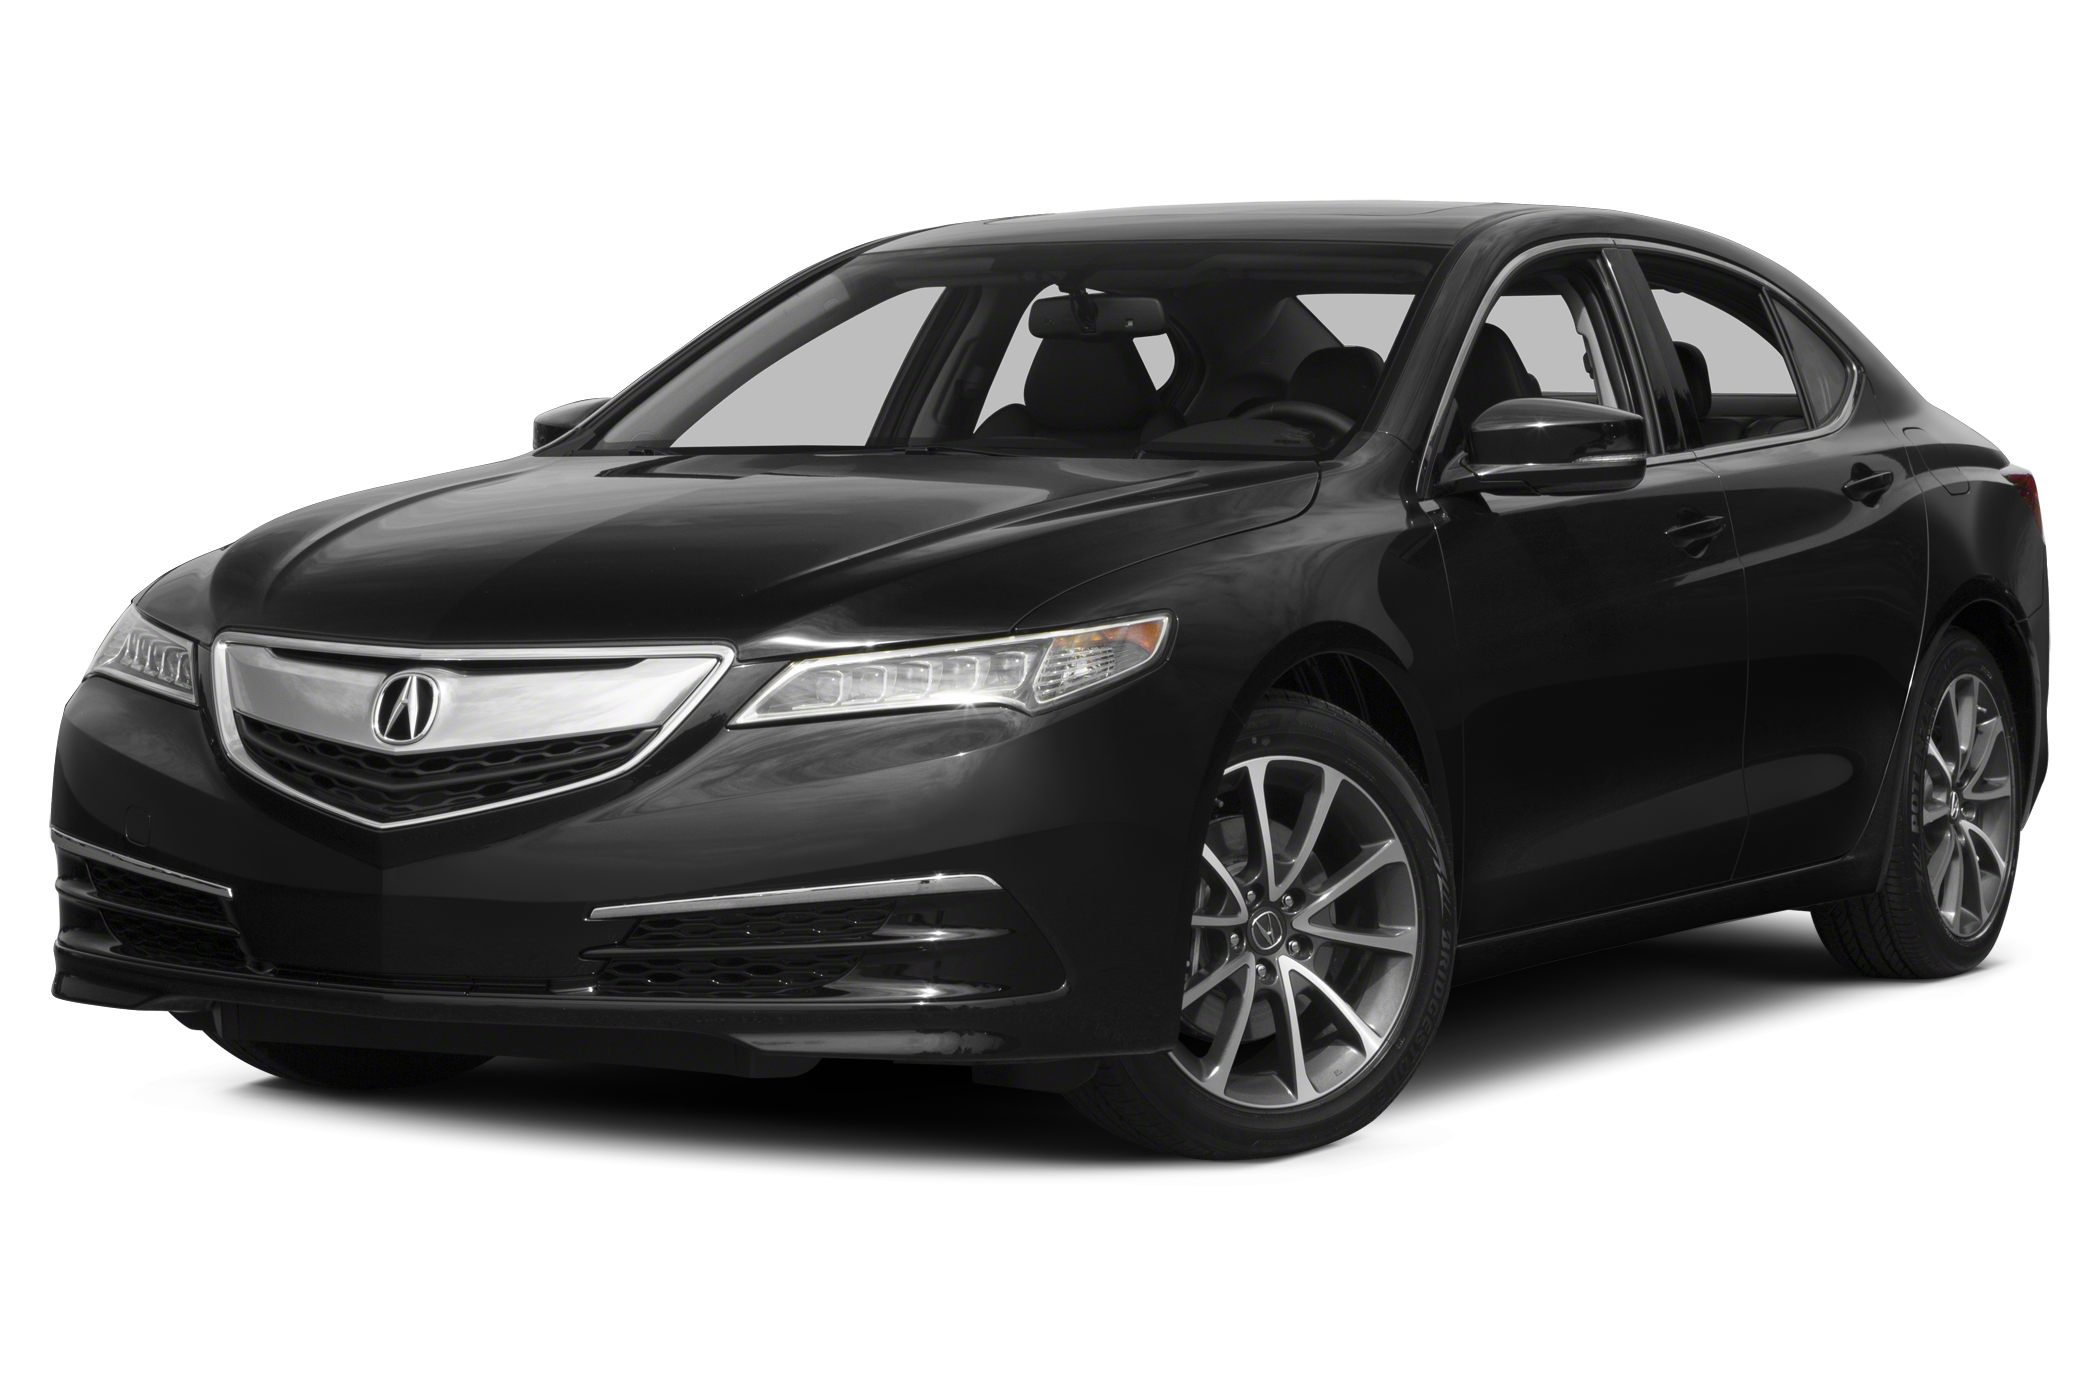 2015 Acura TLX V6 Sedan for sale in Columbus for $36,115 with 10 miles.